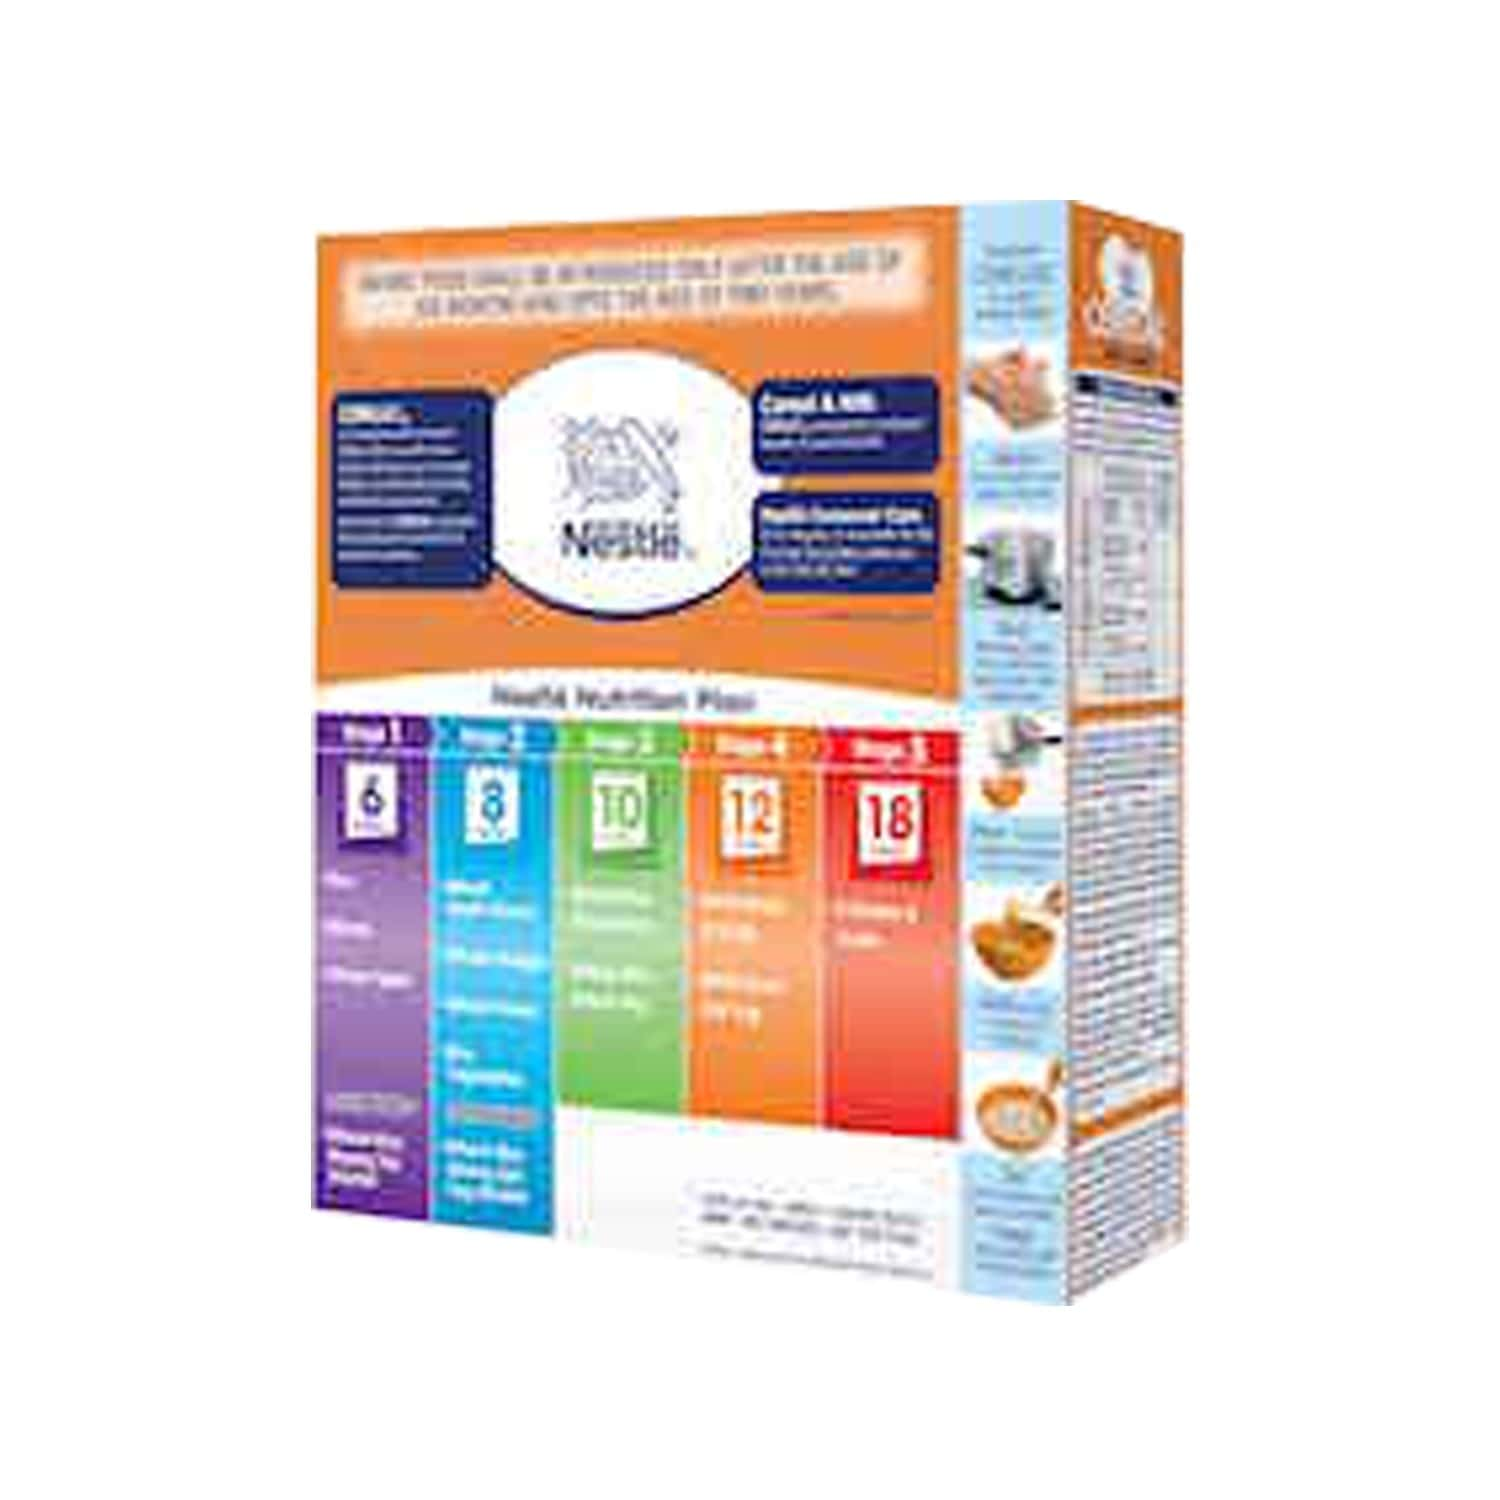 Nestle Cerelac Baby Cereal With Milk, Wheat Orange From 8 Months, 300g Bag-in-box Pack